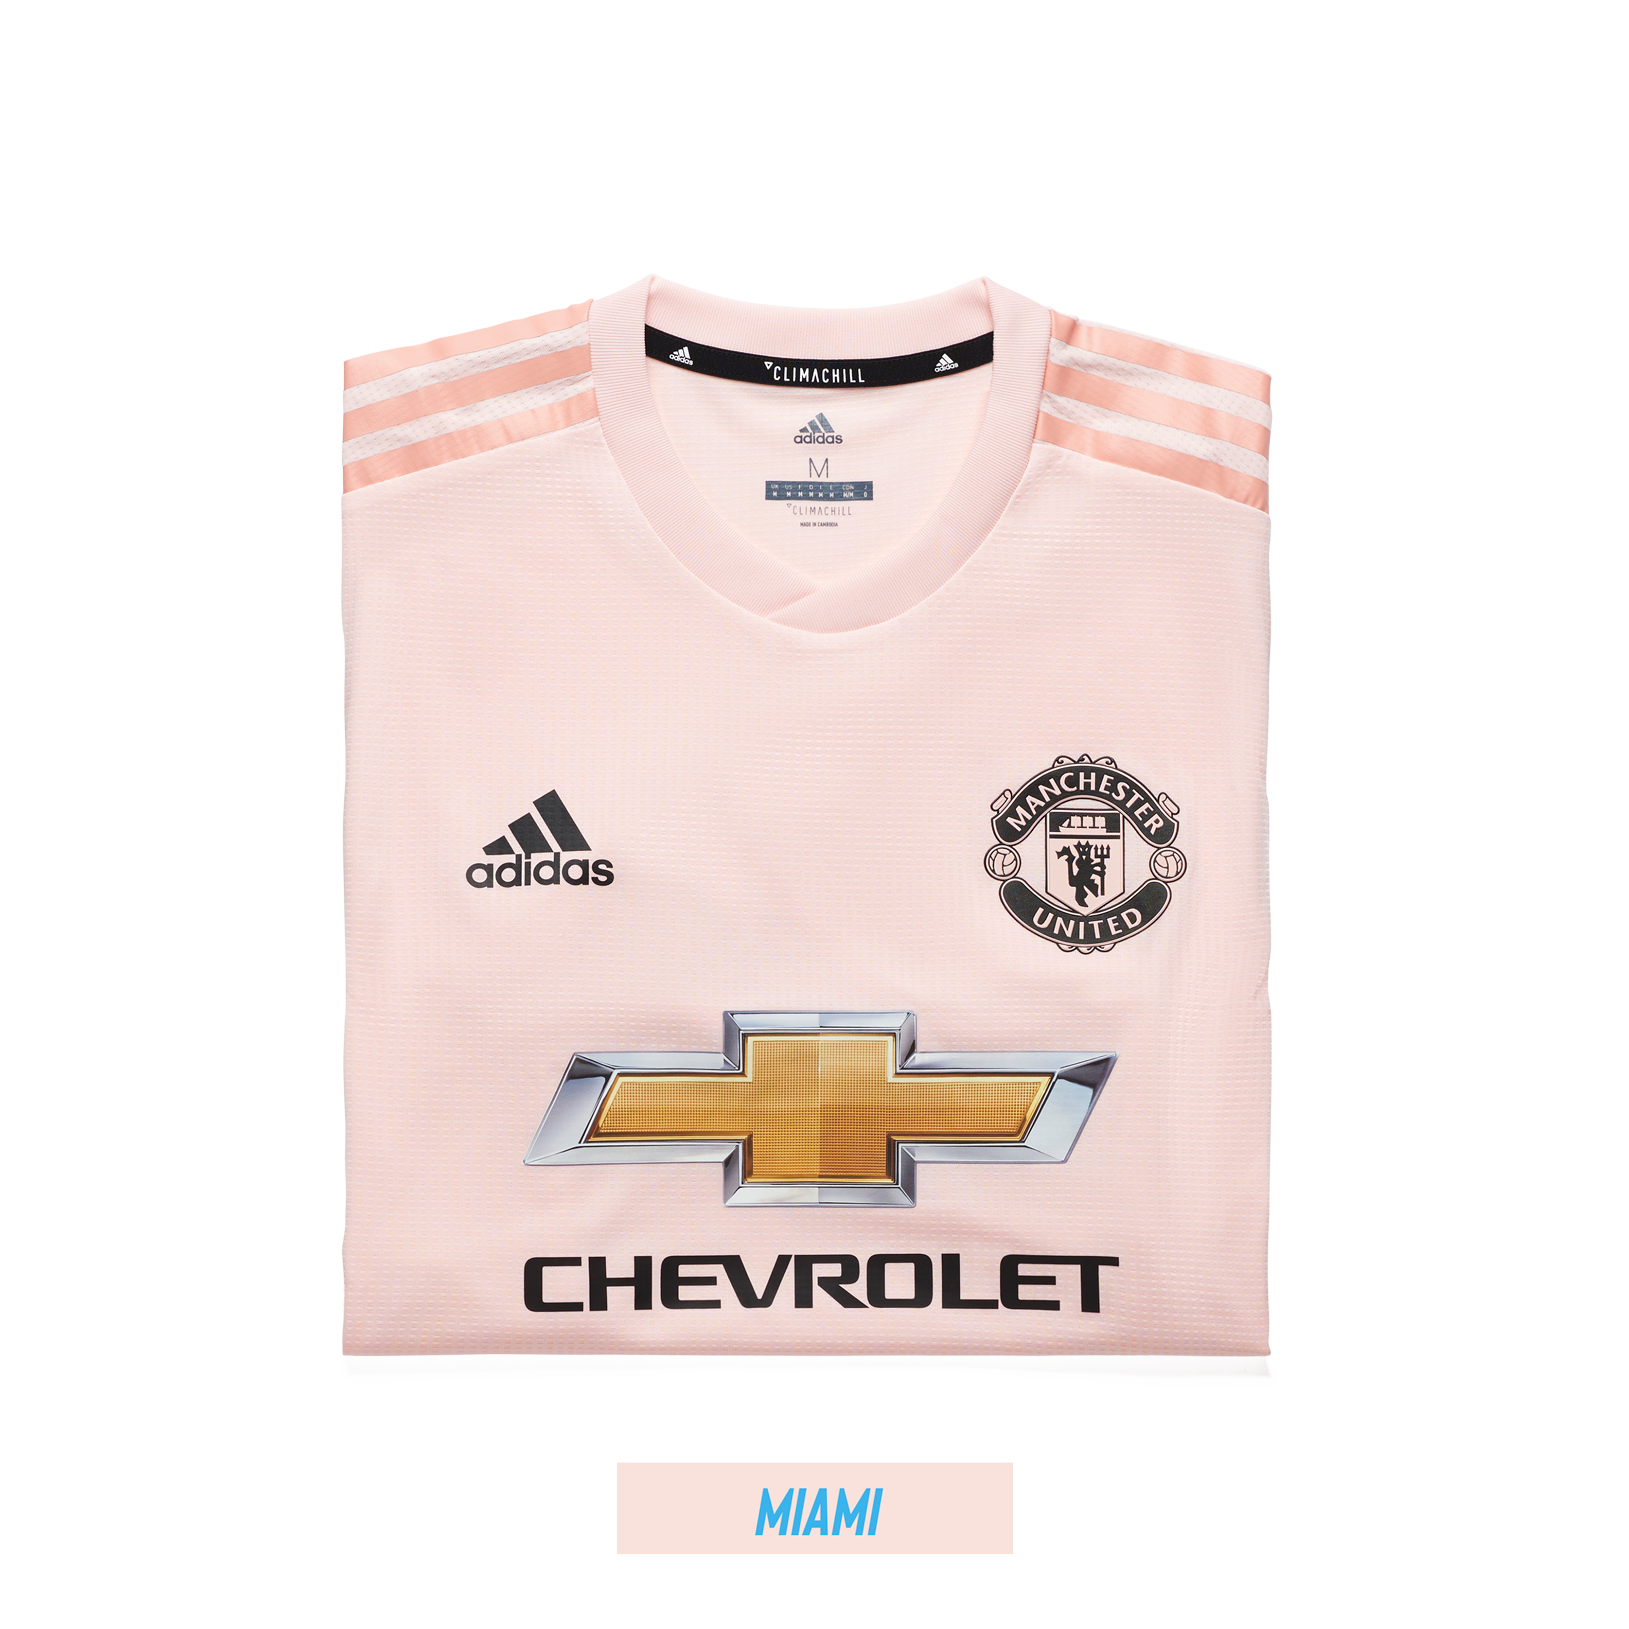 Glory-by-Nick-Pecori-Photographer-Manchester-United-Adidas-Kith-Parley-Miami-25.png